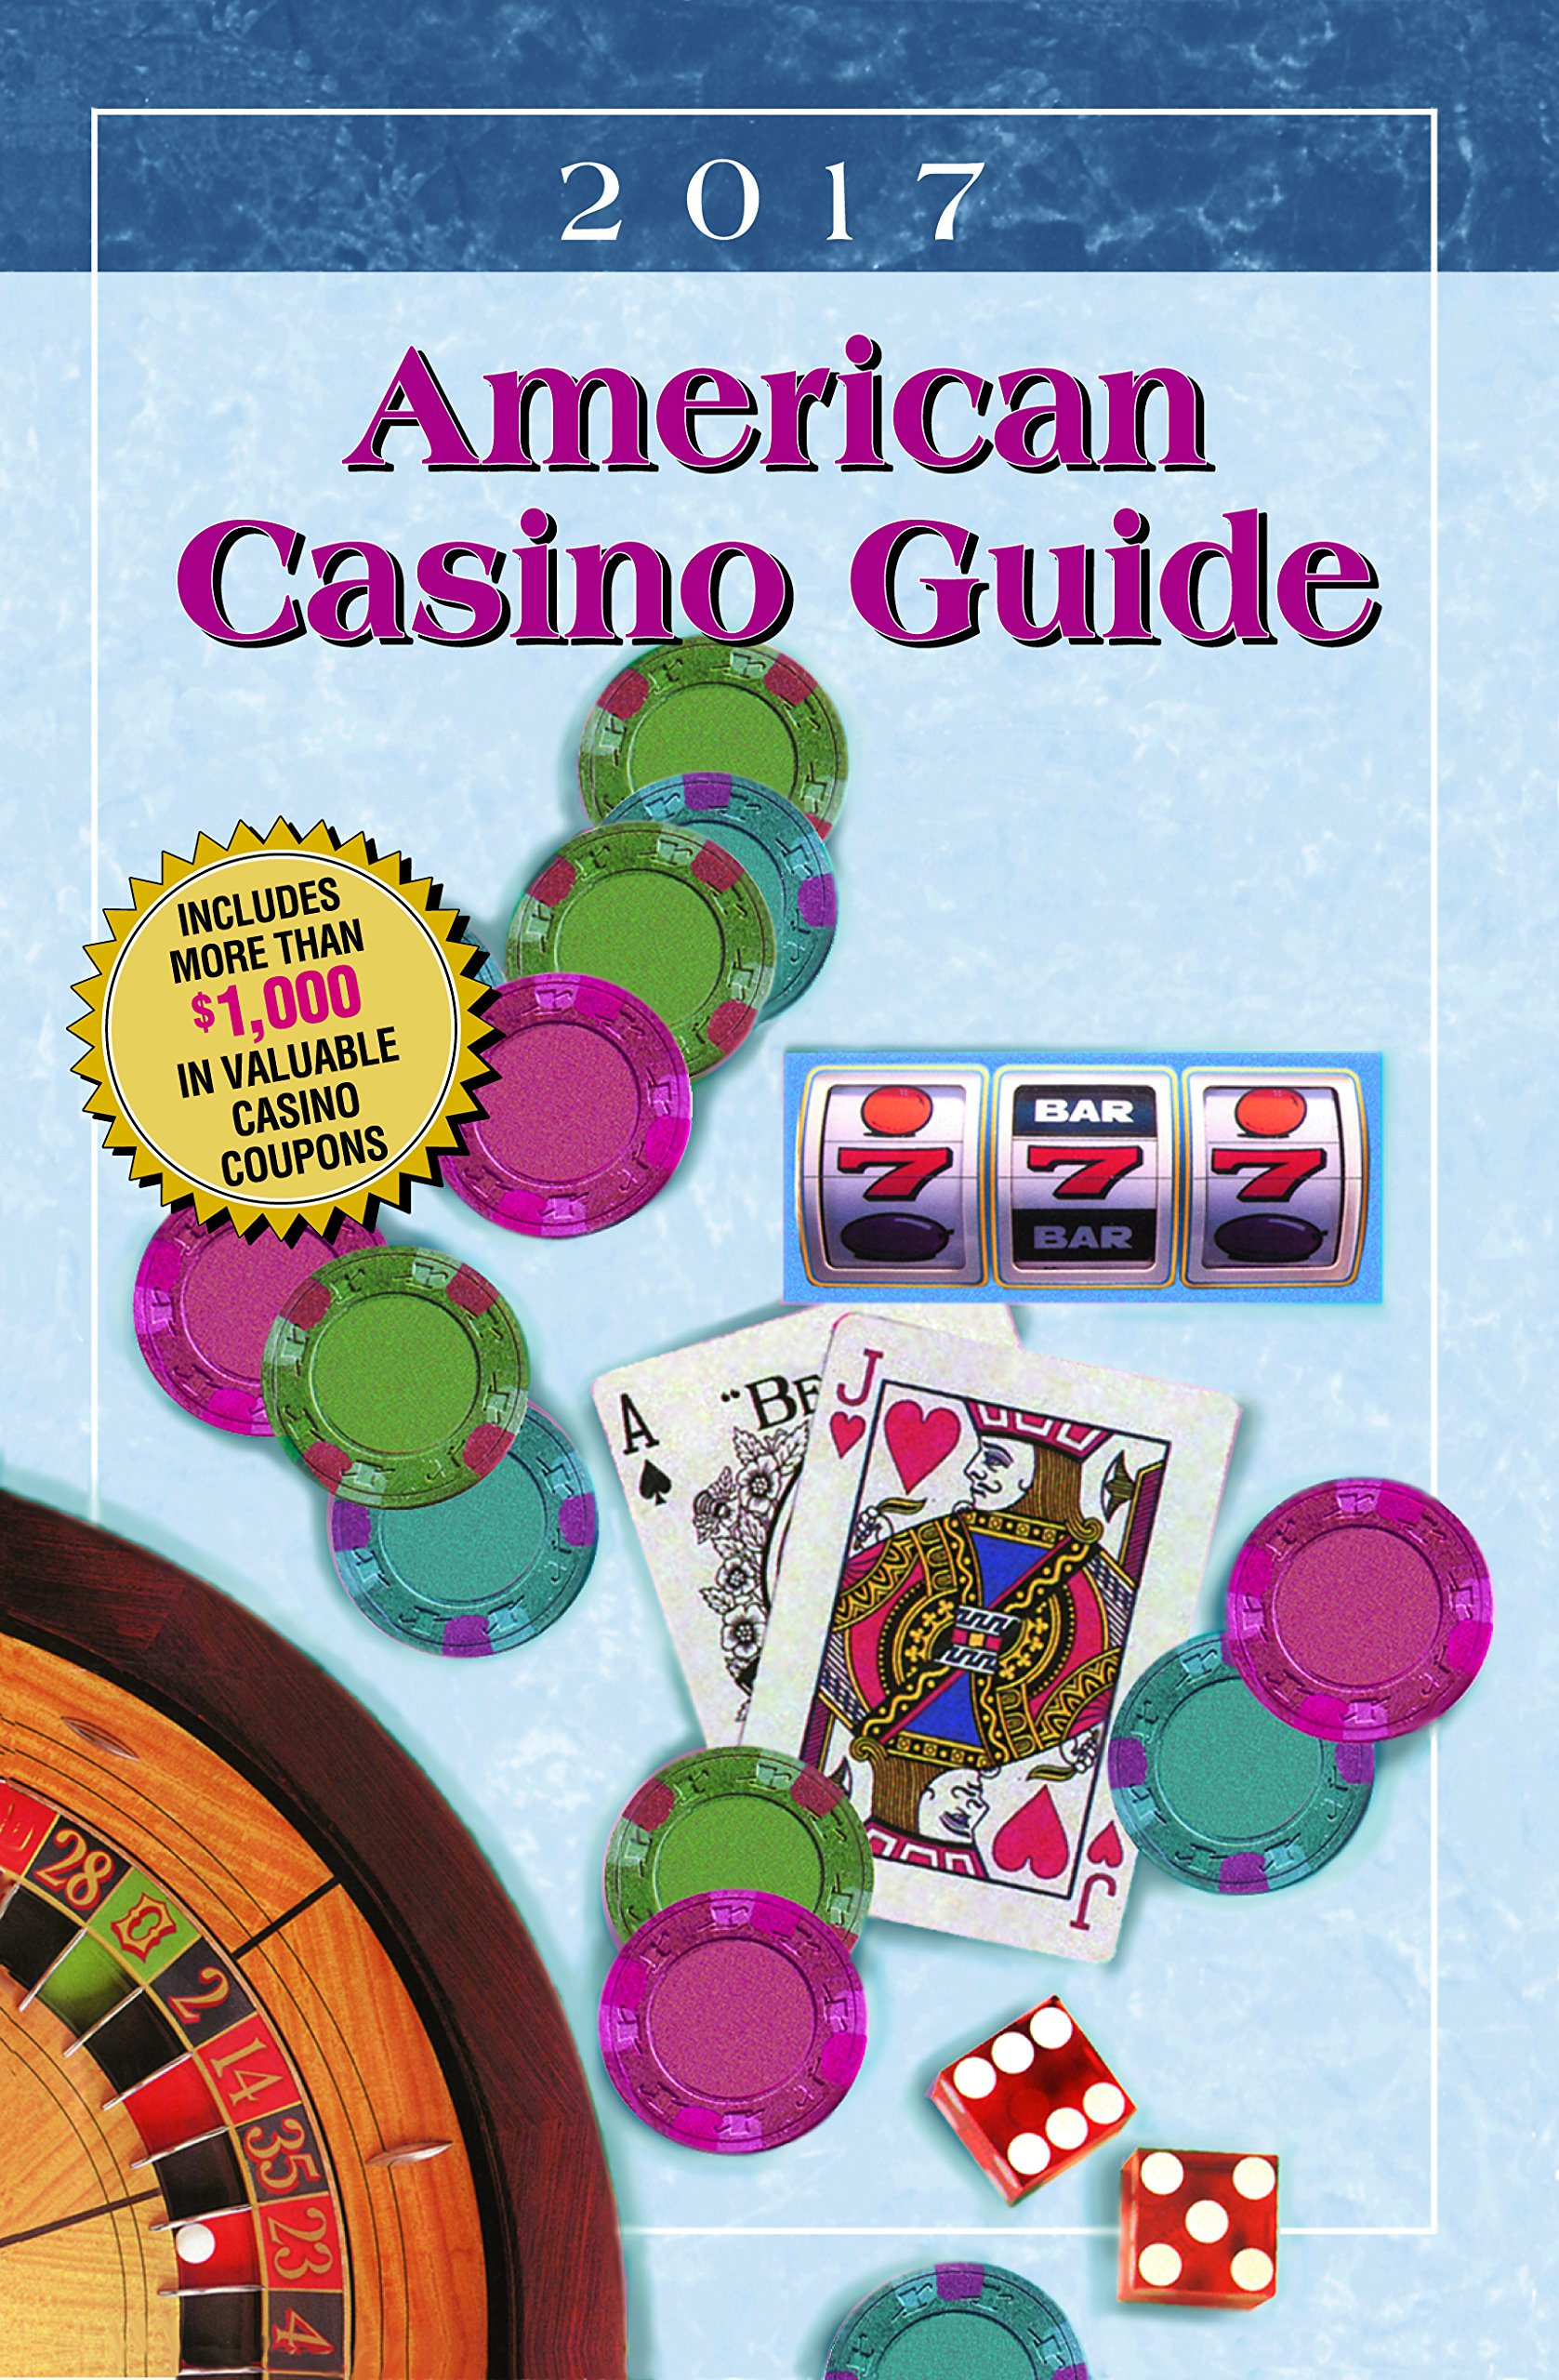 American Casino Guide 2017 Edition by Casino Vacations